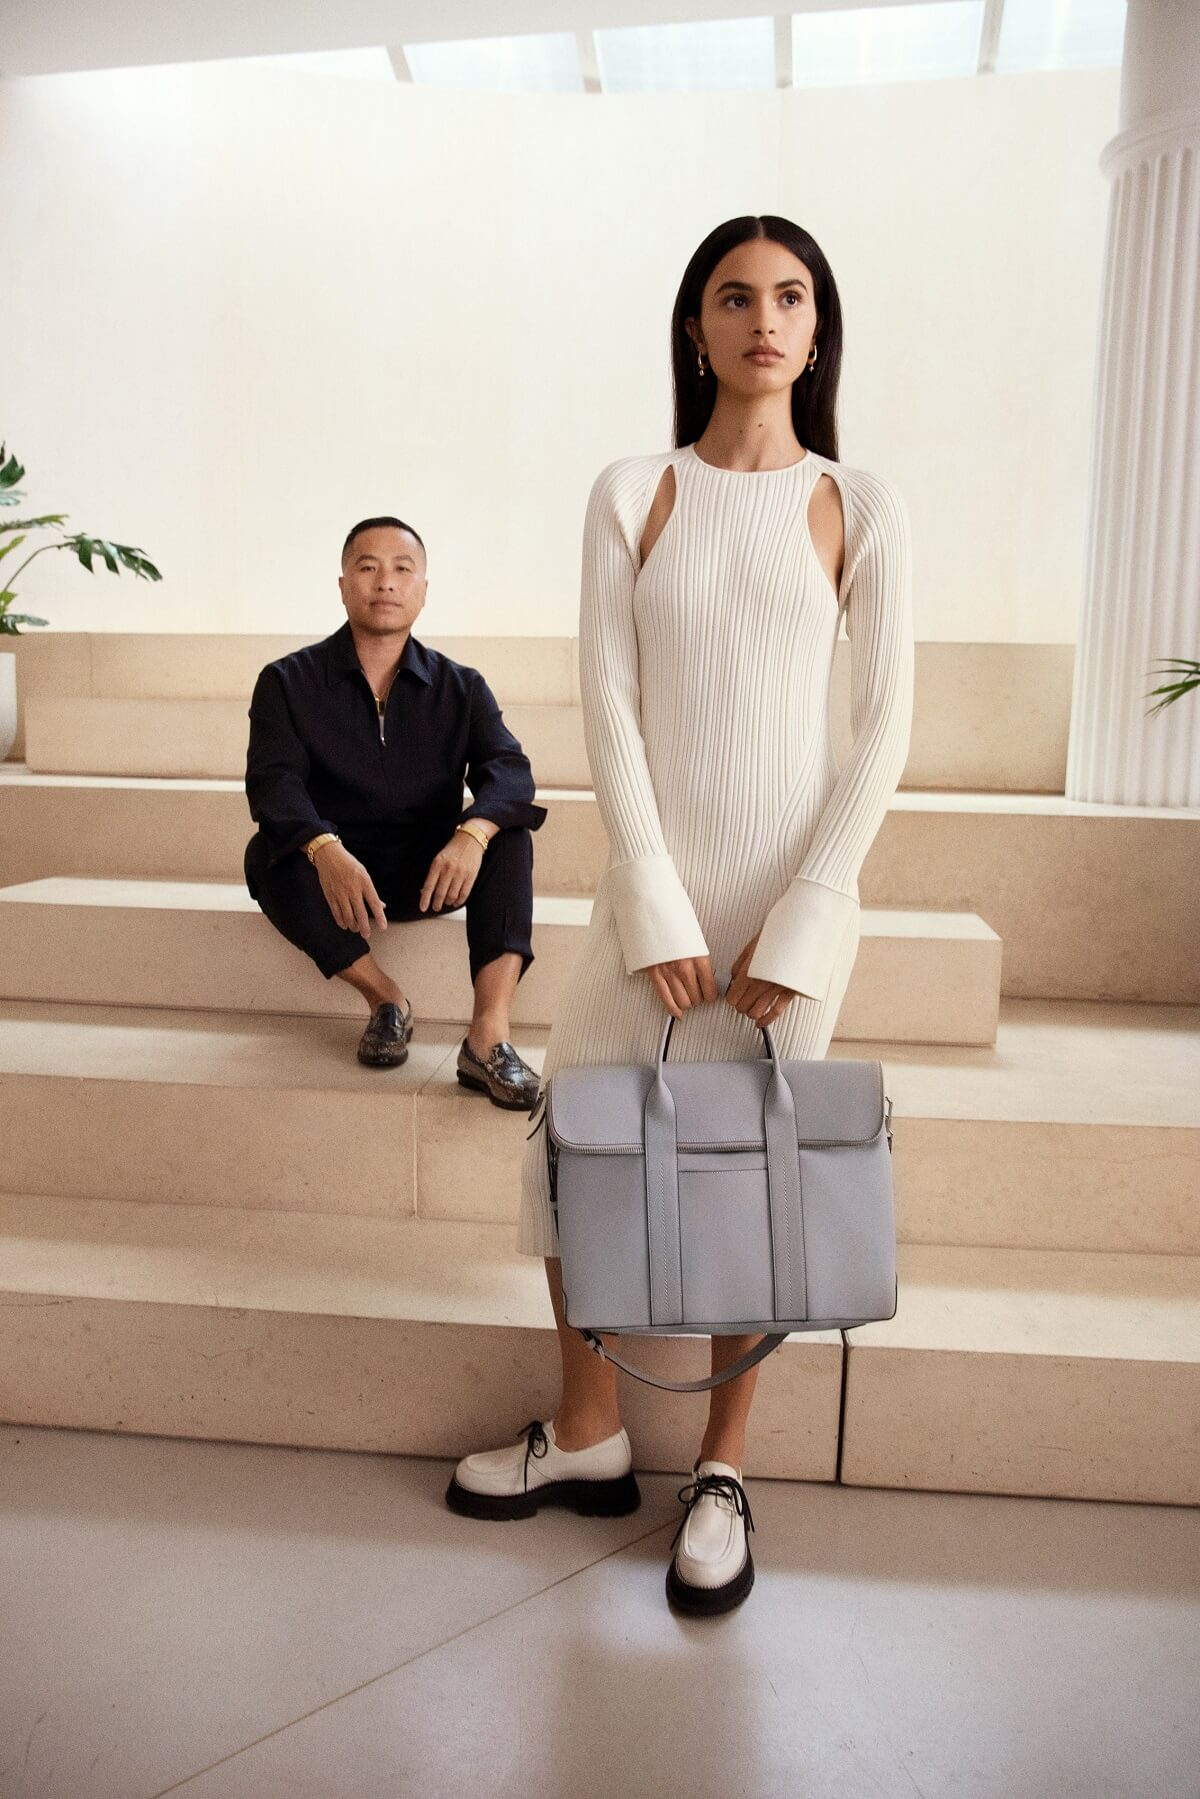 287105_Volvo_Cars_teams_up_with_3_1_Phillip_Lim_and_launches_sustainable_weekend.jpg